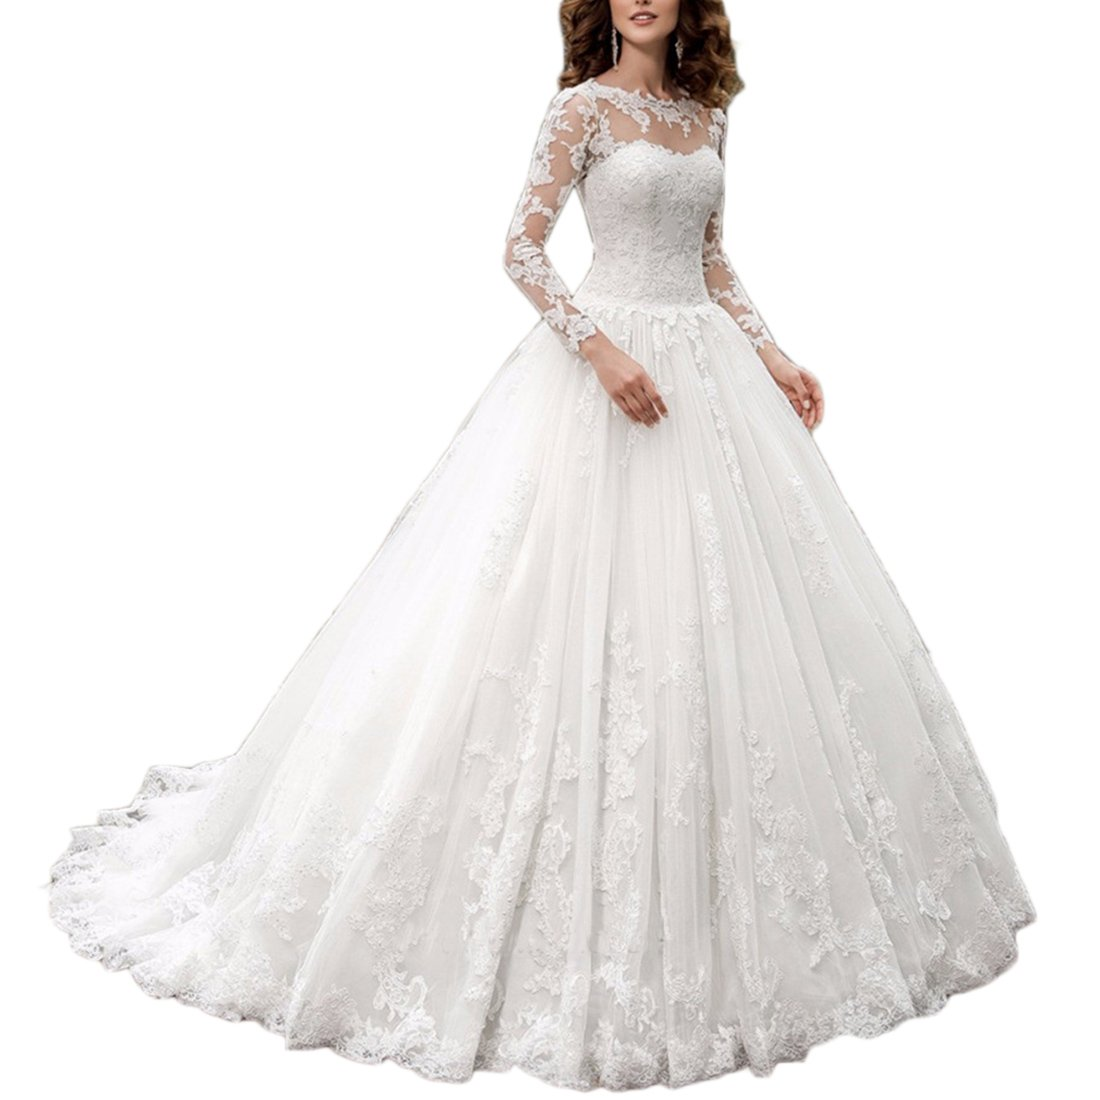 Westcorler Castle Princess China Wedding Dresses 2018 Lace Long Sleeve Plus Size Ball Gown (us2, White) by Westcorler